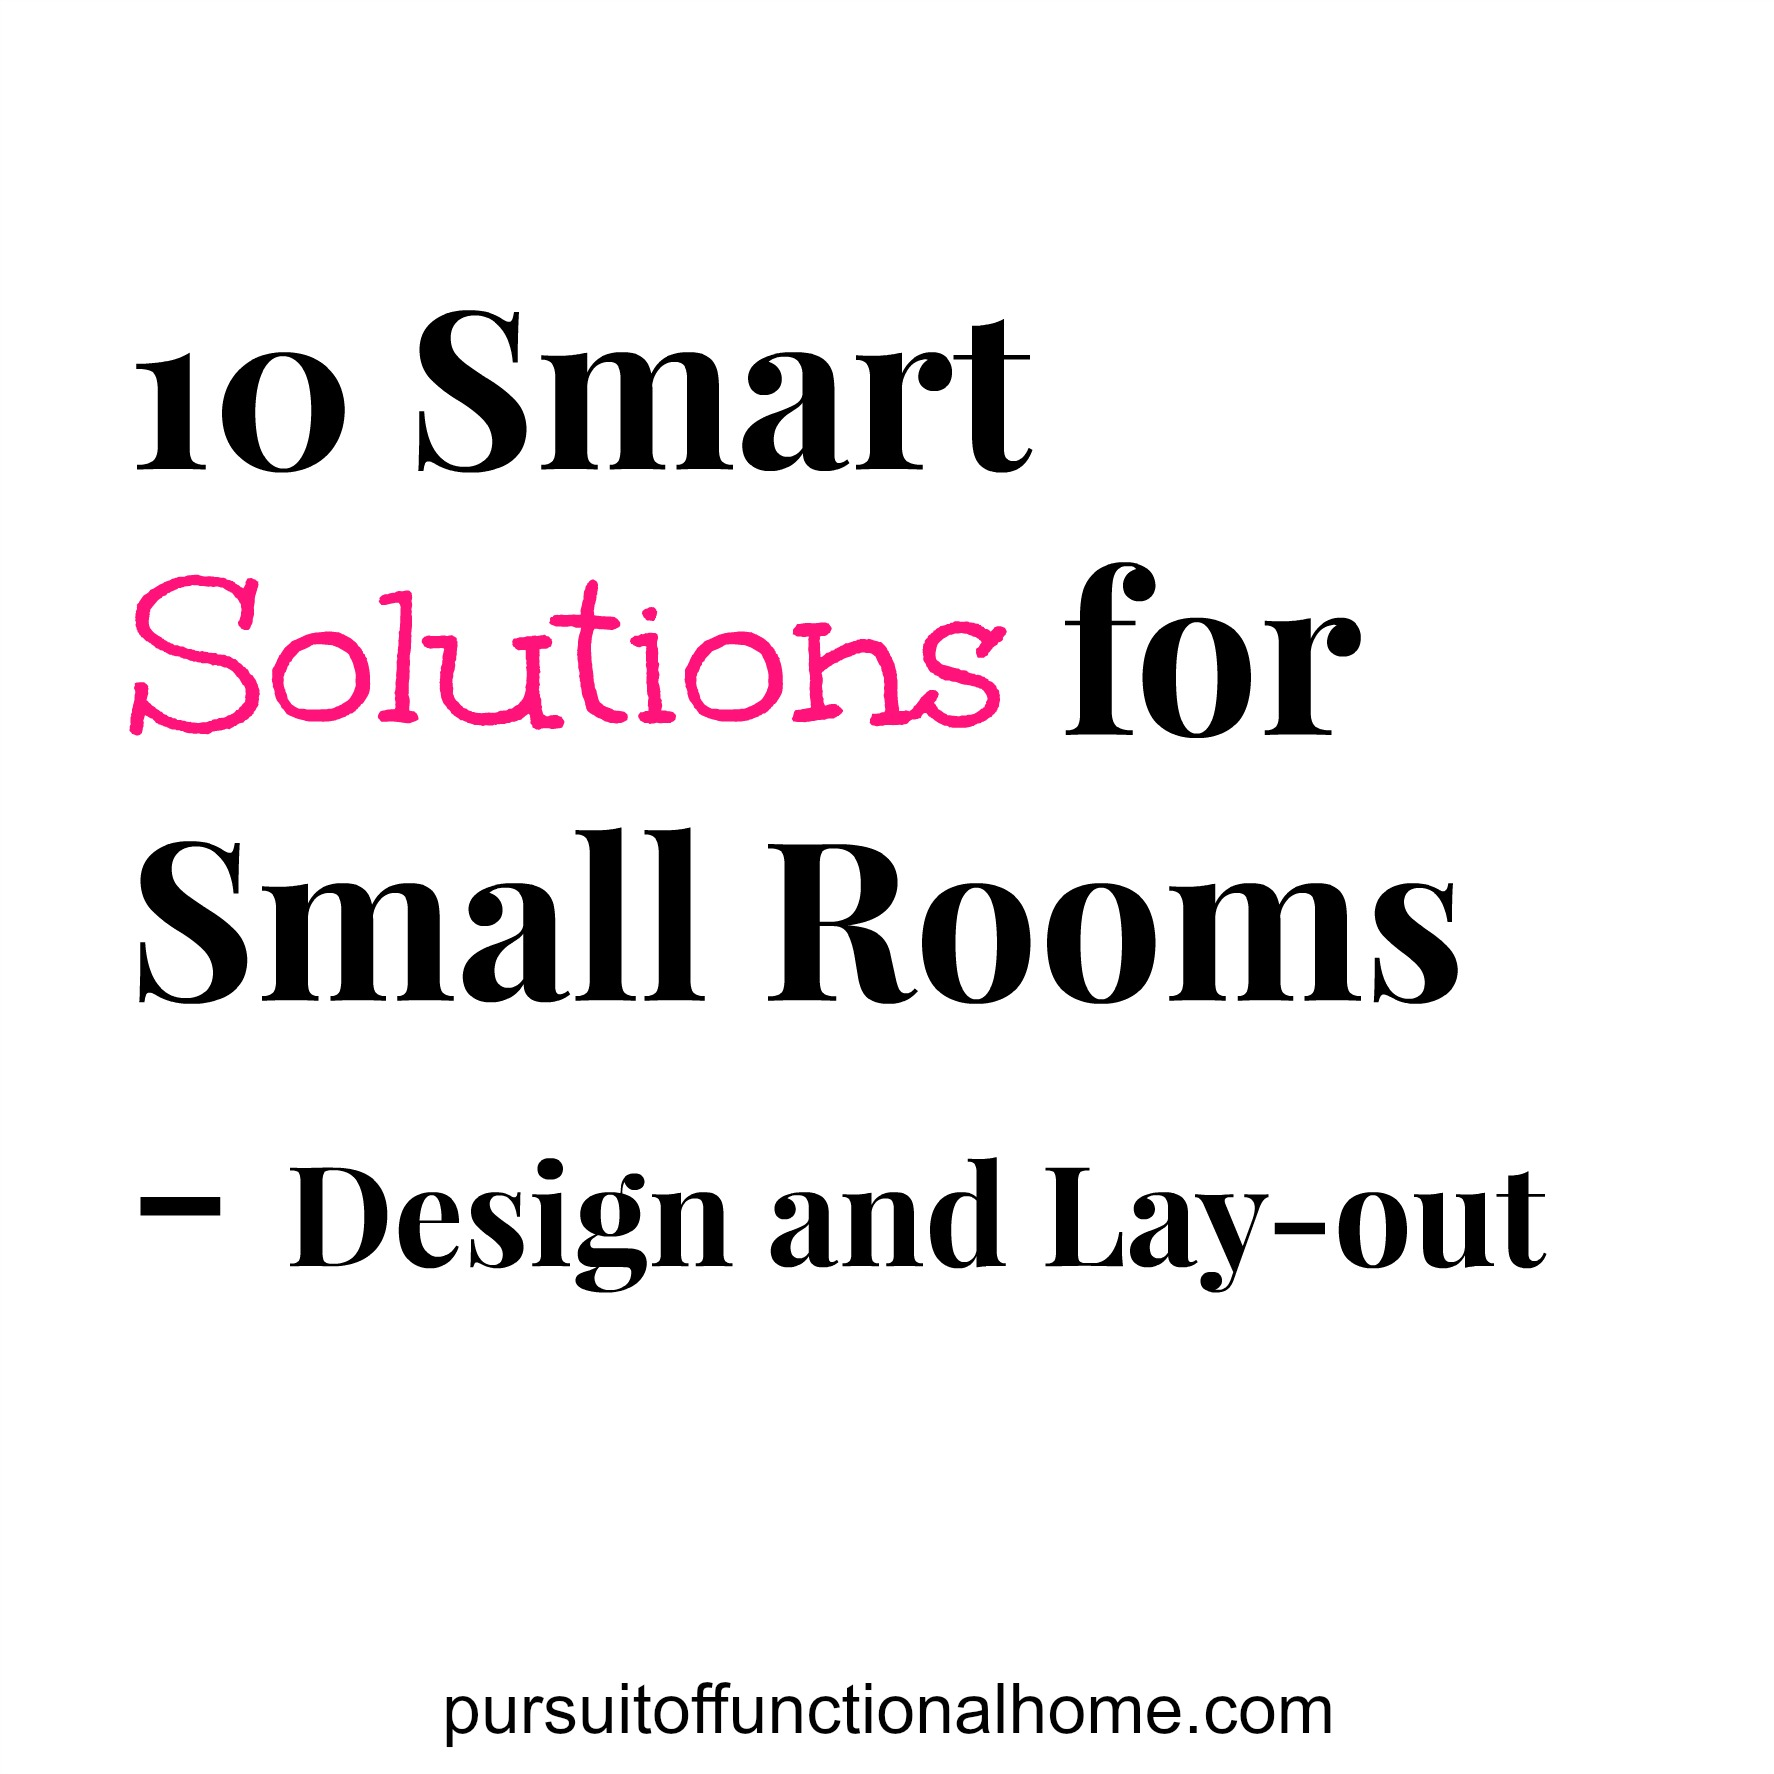 10 Smart Solutions for Small Rooms